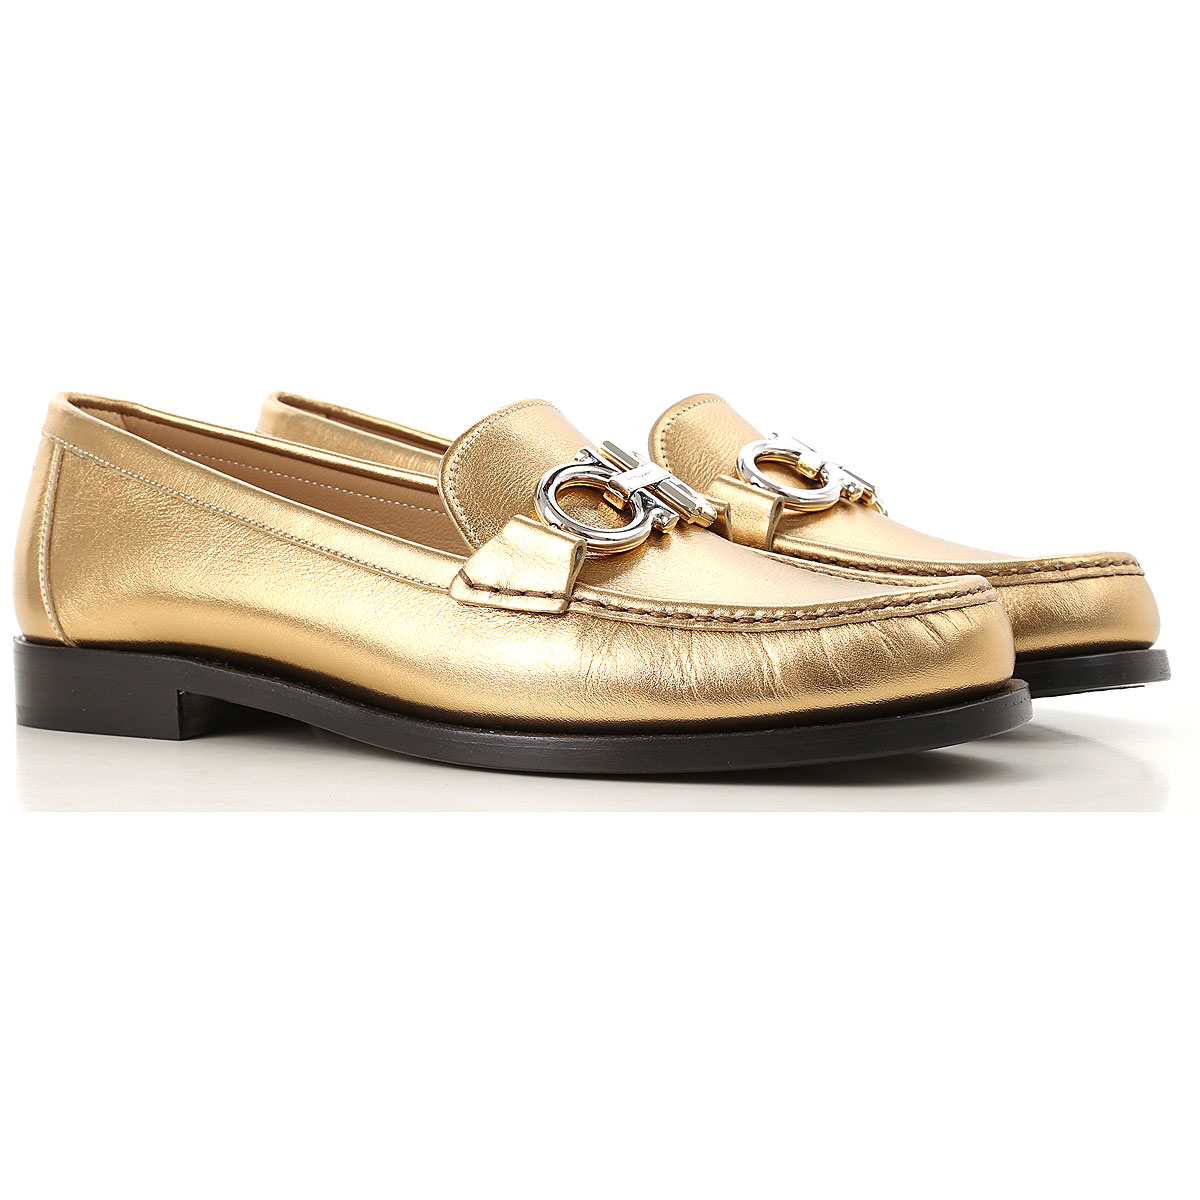 Salvatore Ferragamo Loafers for Women in Outlet Gold USA - GOOFASH